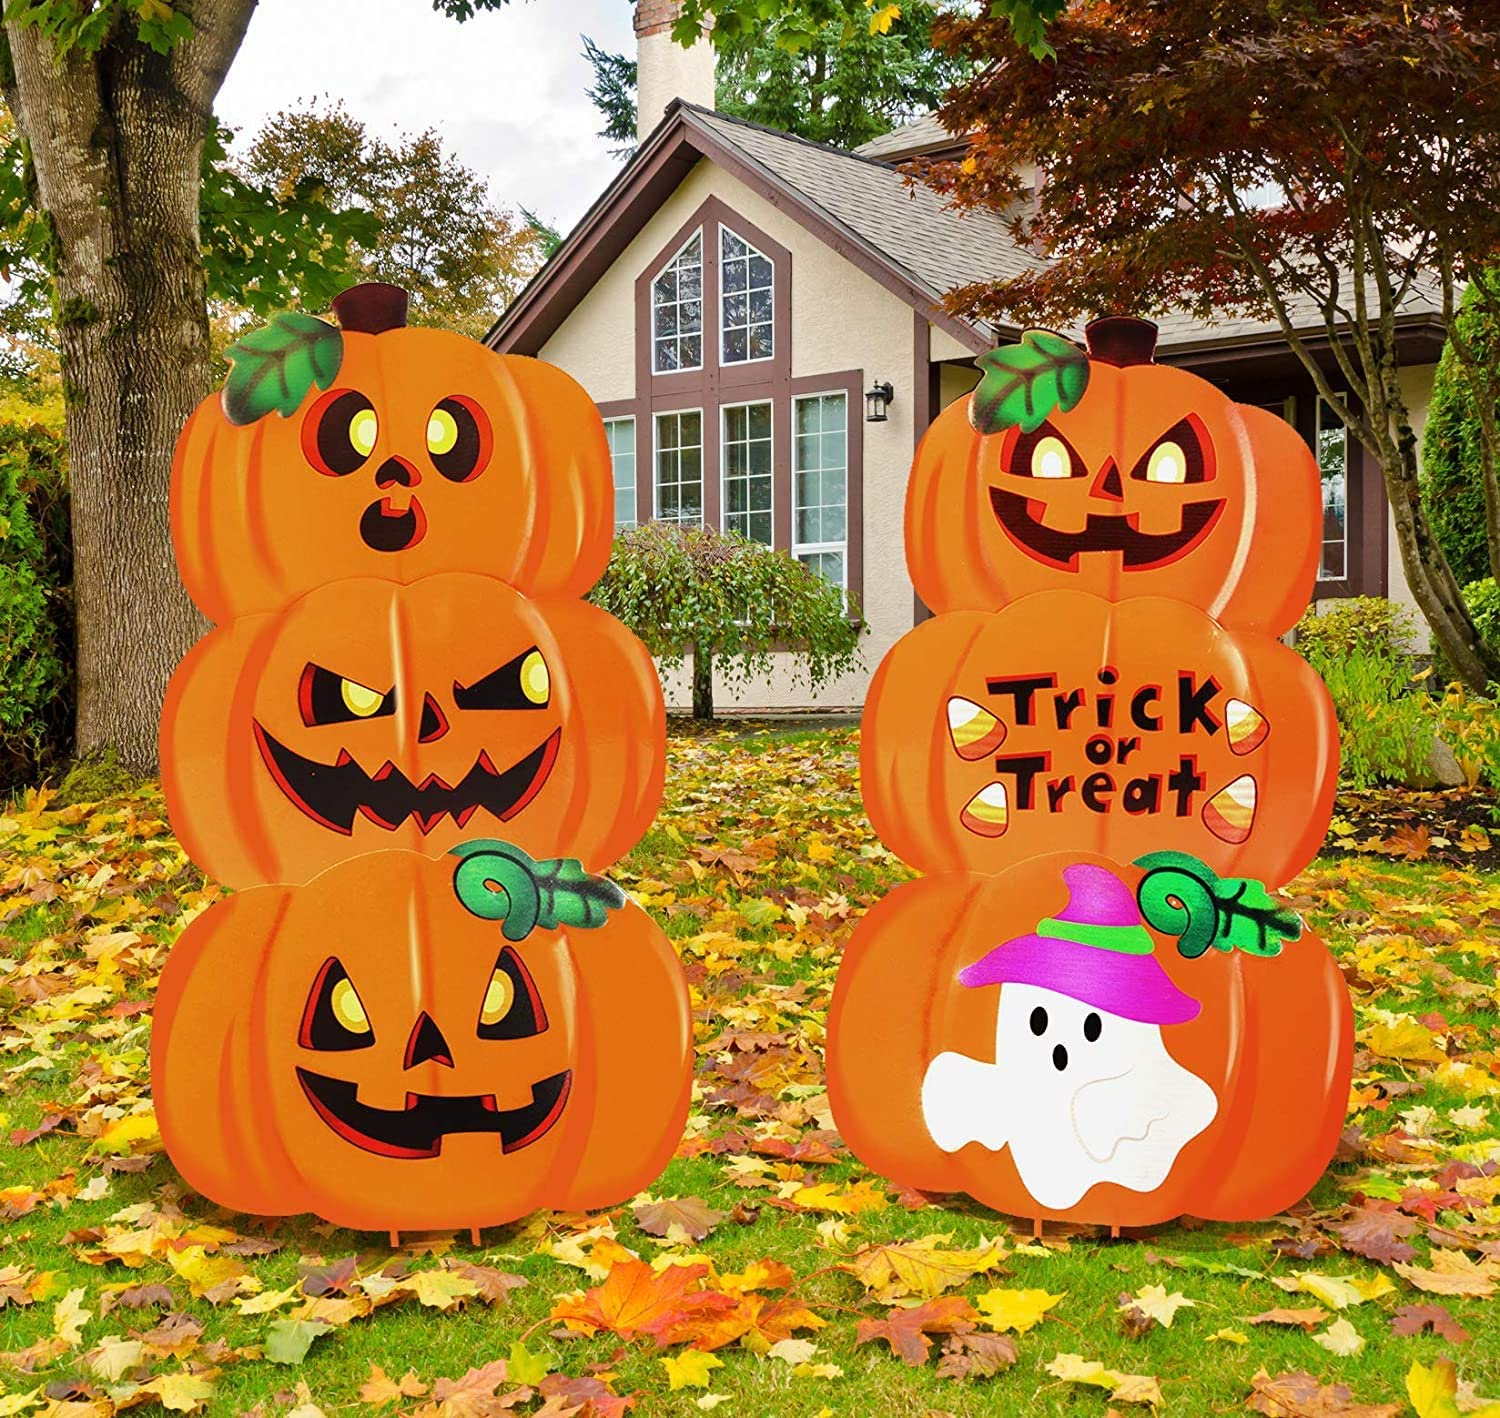 JOYIN 2 Stacked Metal Halloween Lawn Yard Stake Signs for Outdoor Decorations, Pumpkin & Ghost Home Decor, Trick or Treat Props, Homeschooling Fun